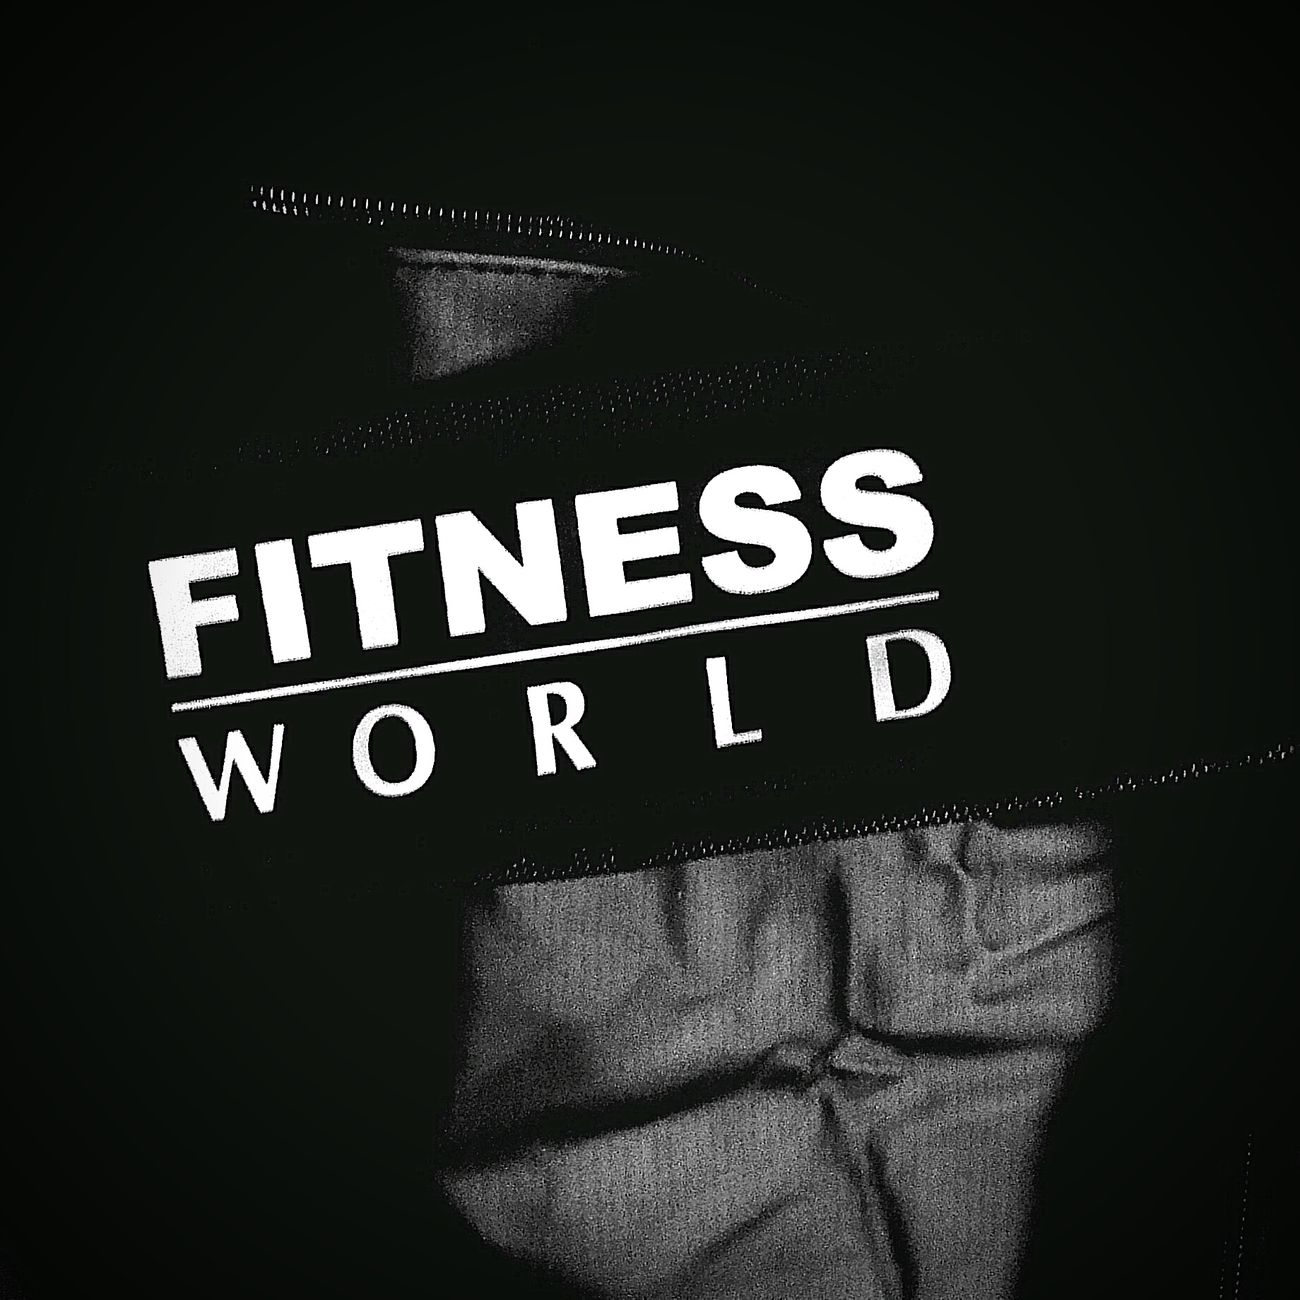 Fitnessworld Fitness